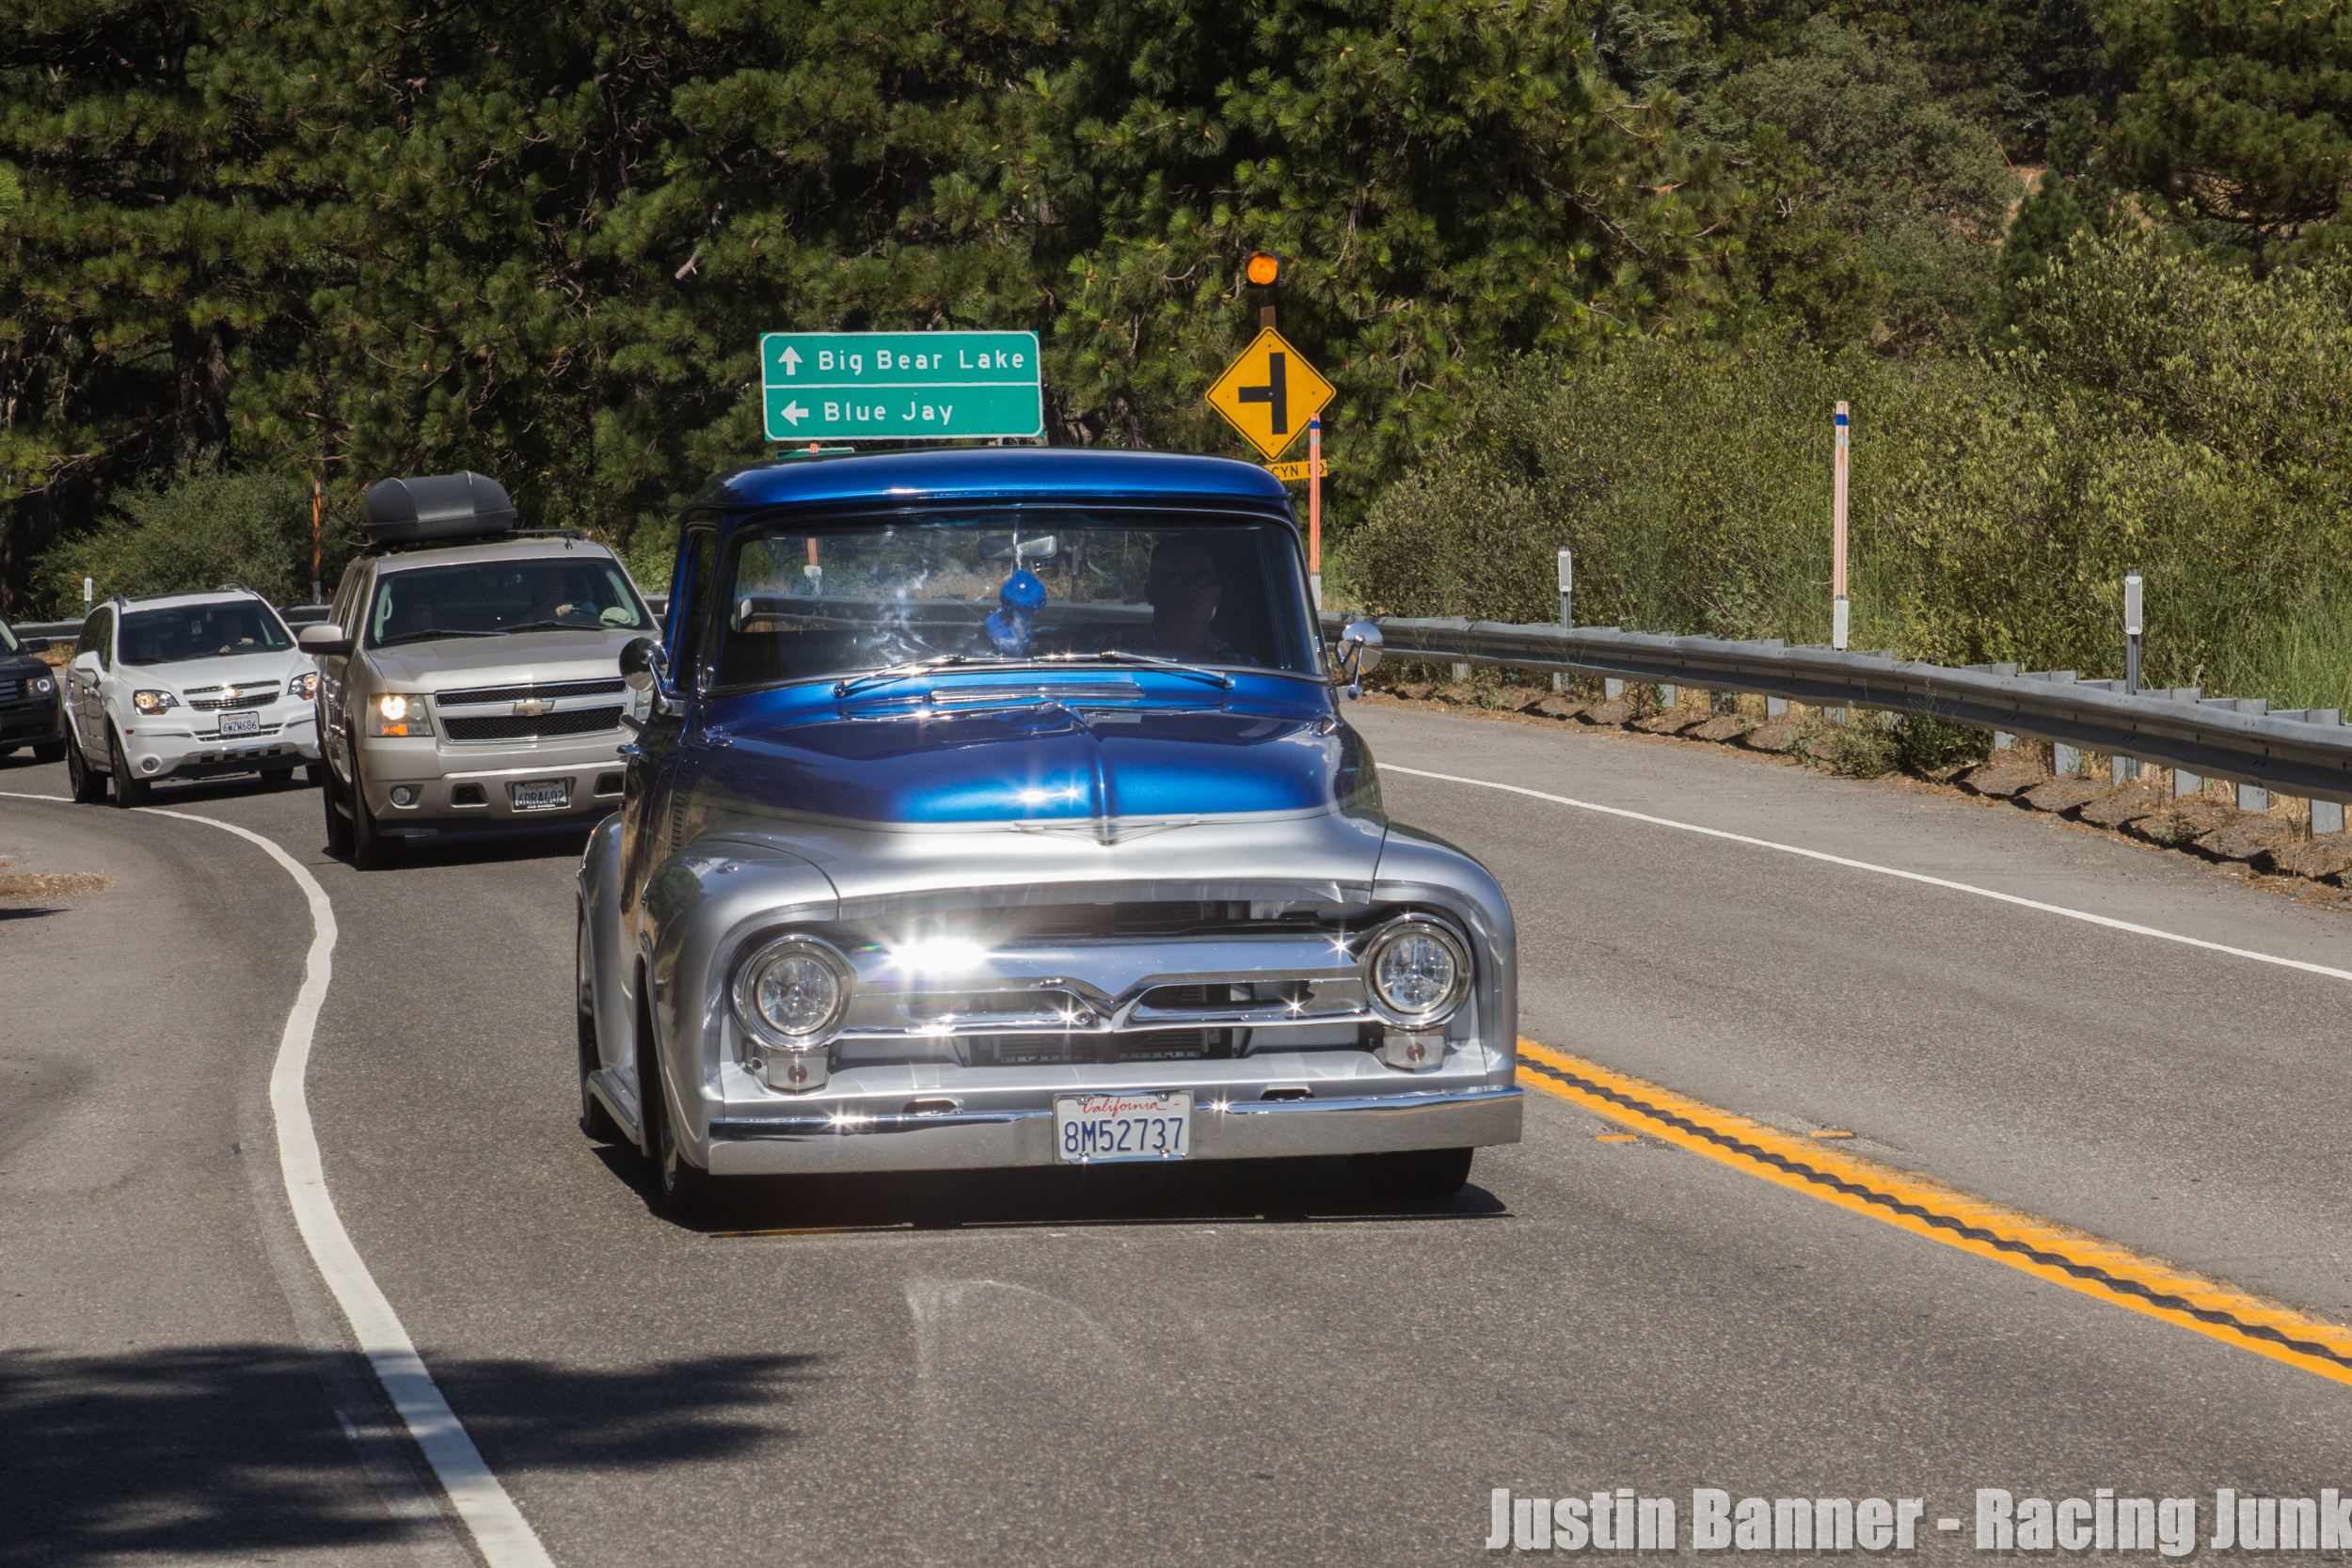 1956 Ford Pickup Show Truck is a Daily Driver